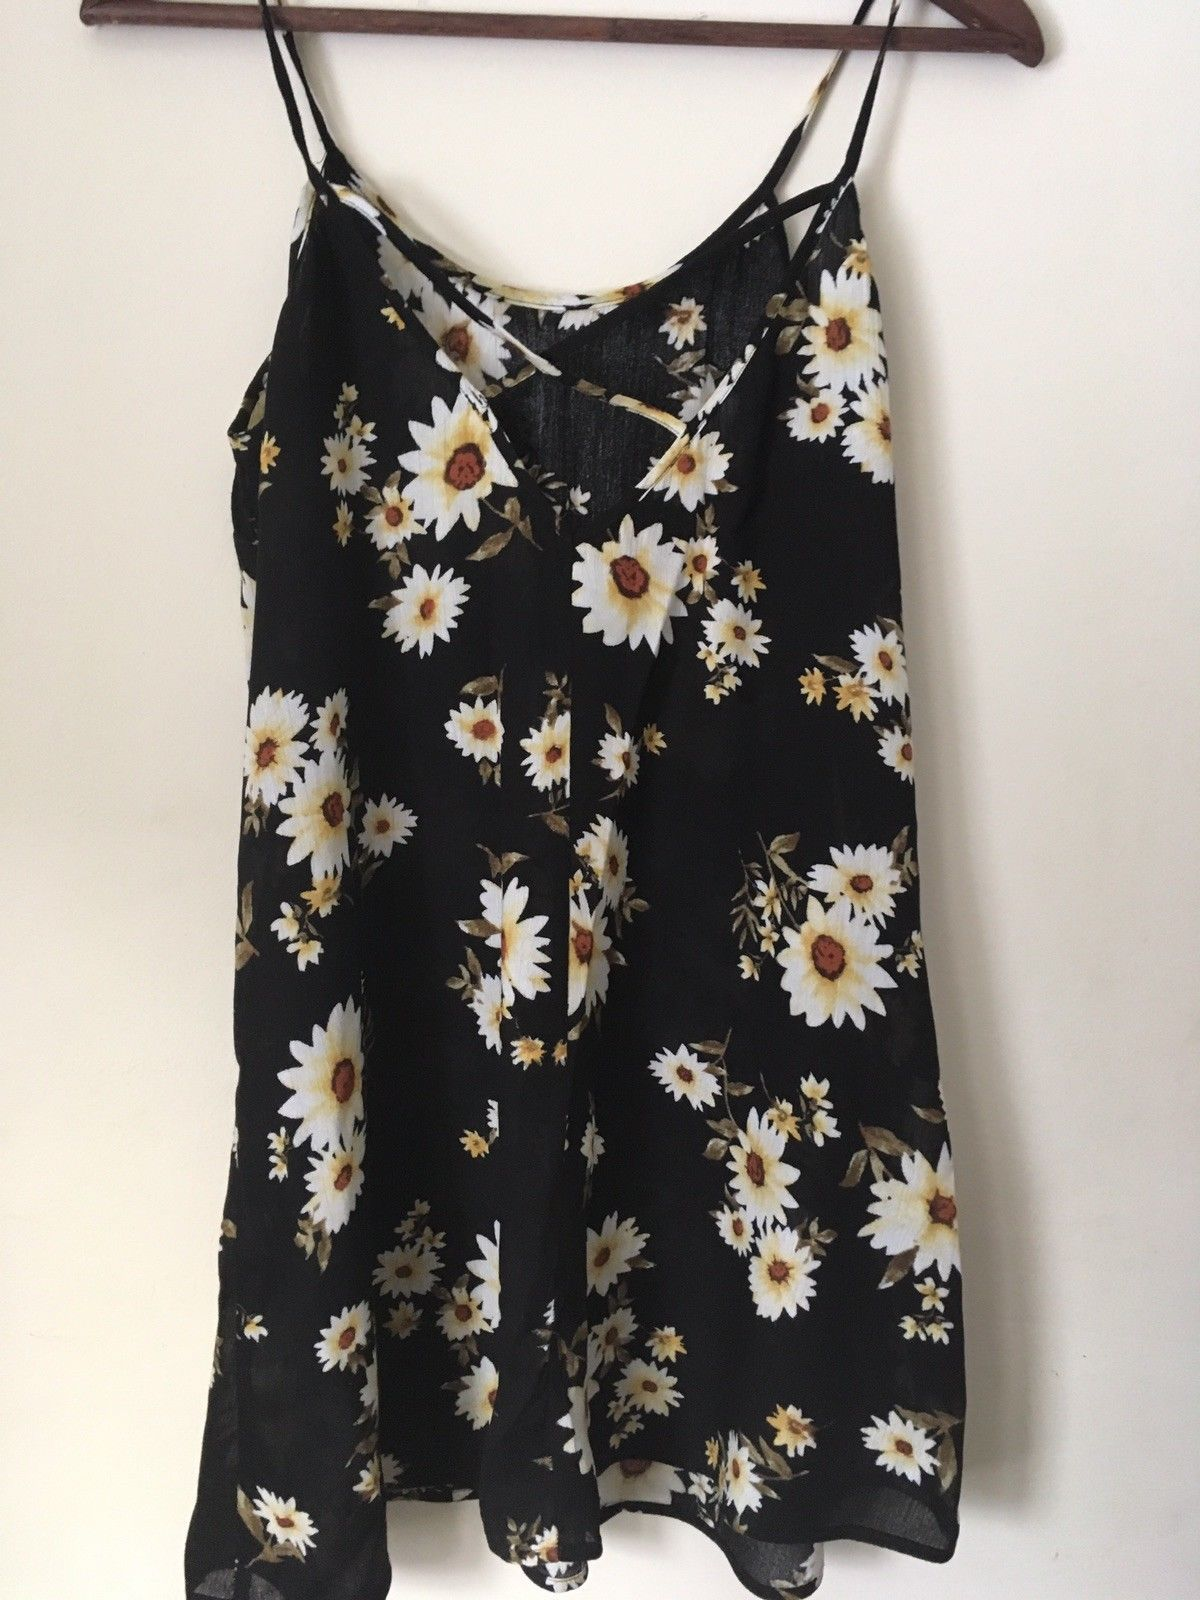 FOREVER 21 BLACK rayon dress with flowers. Size XS.